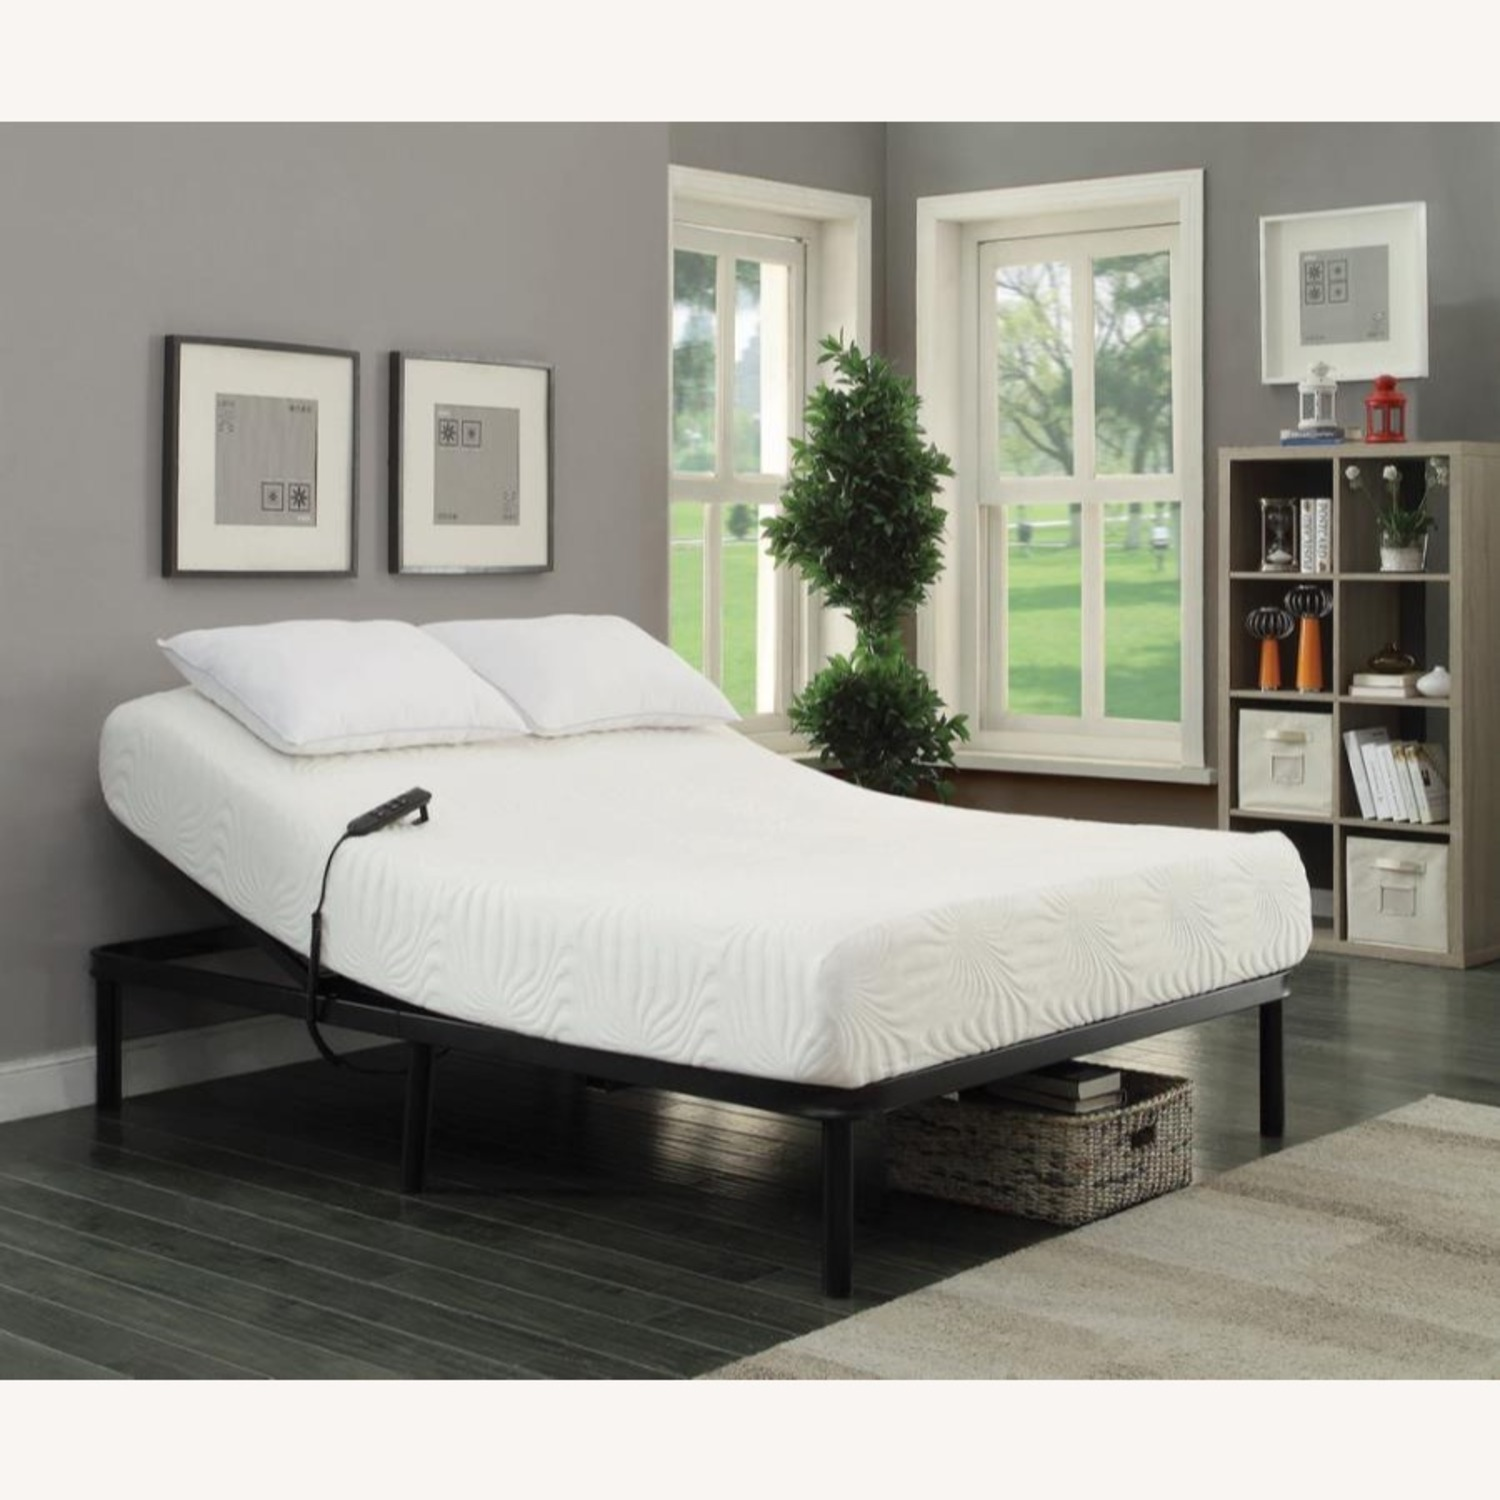 Adjustable Twin XL Bed Base In Black Finish - image-2